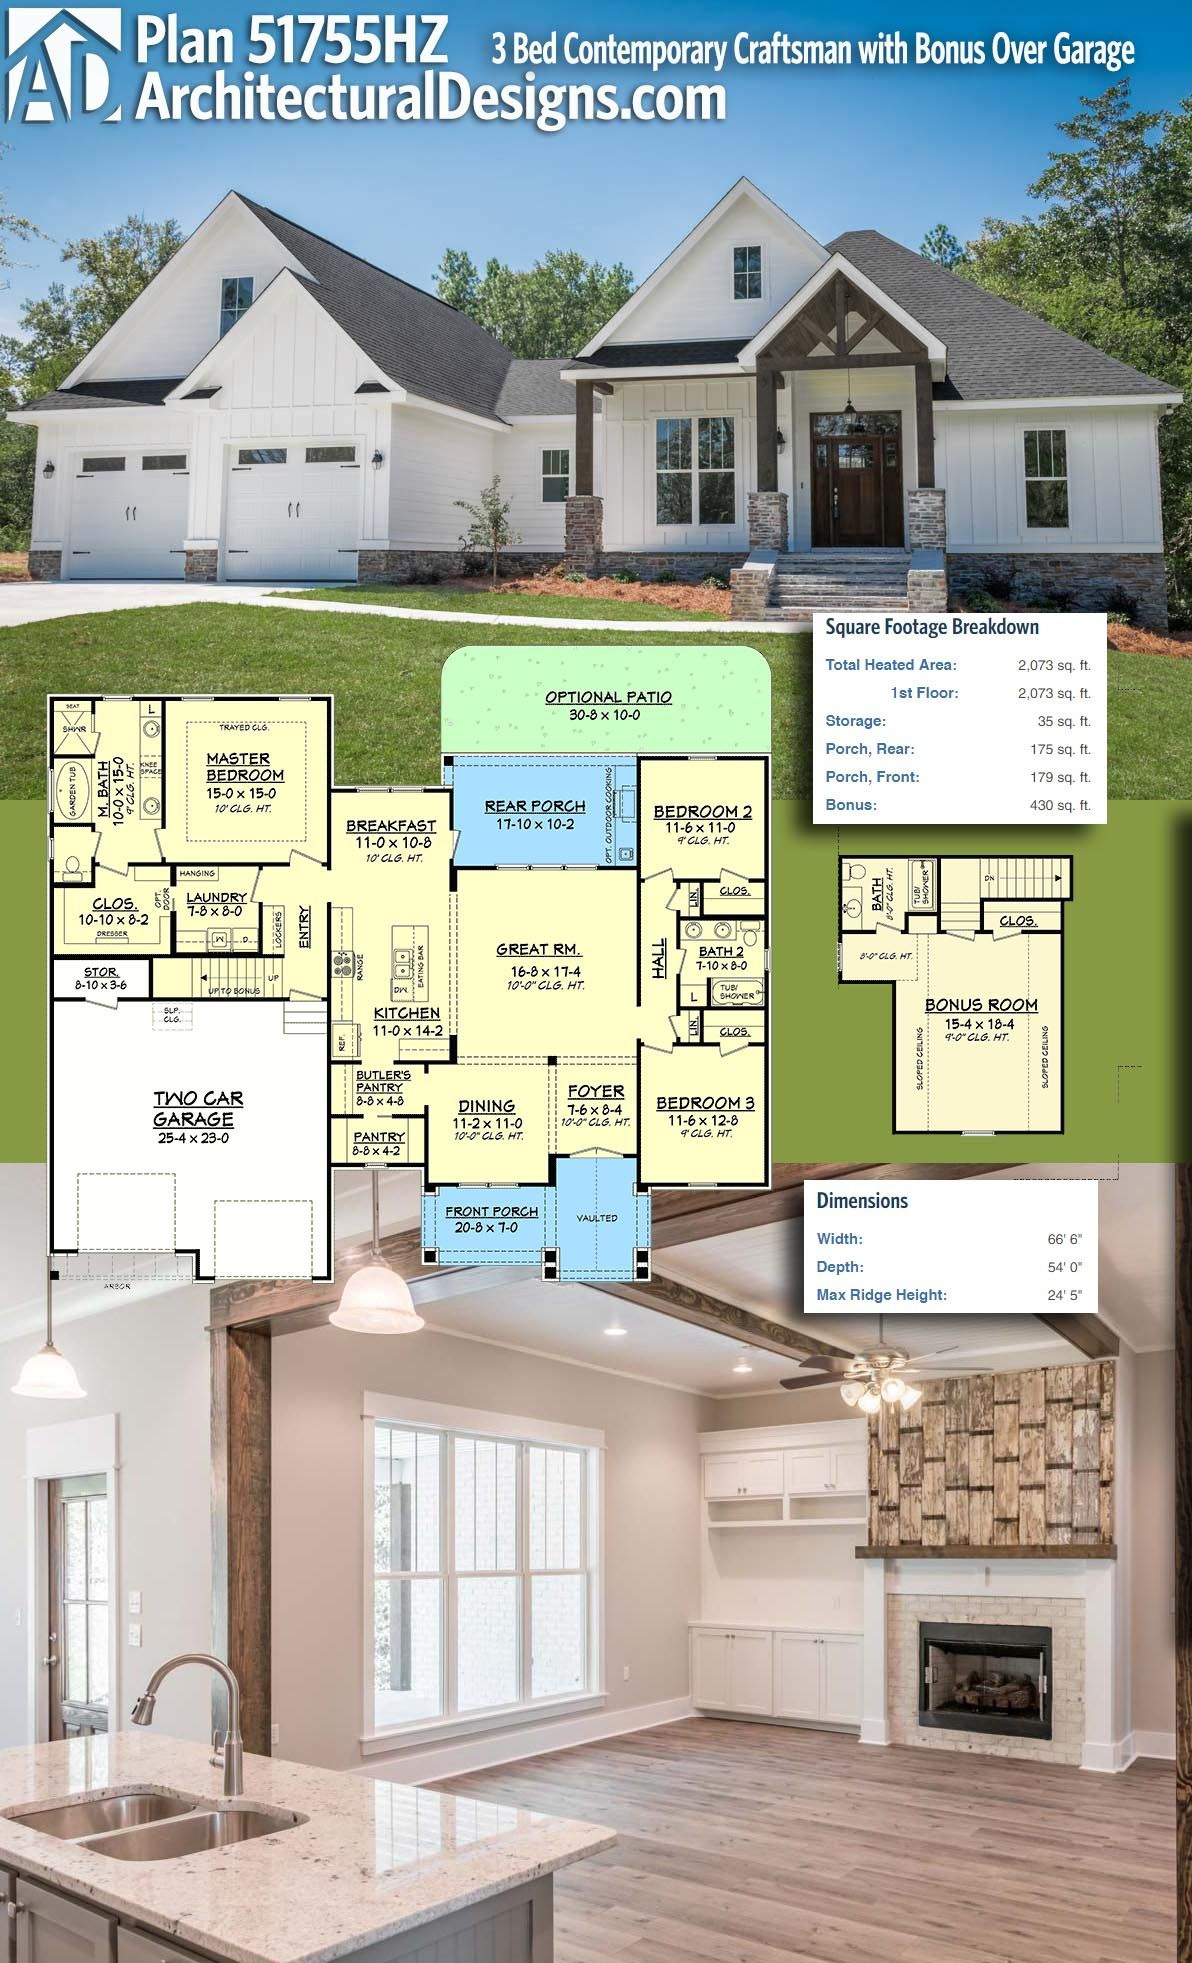 Architectural Designs House Plan 51755HZ is a